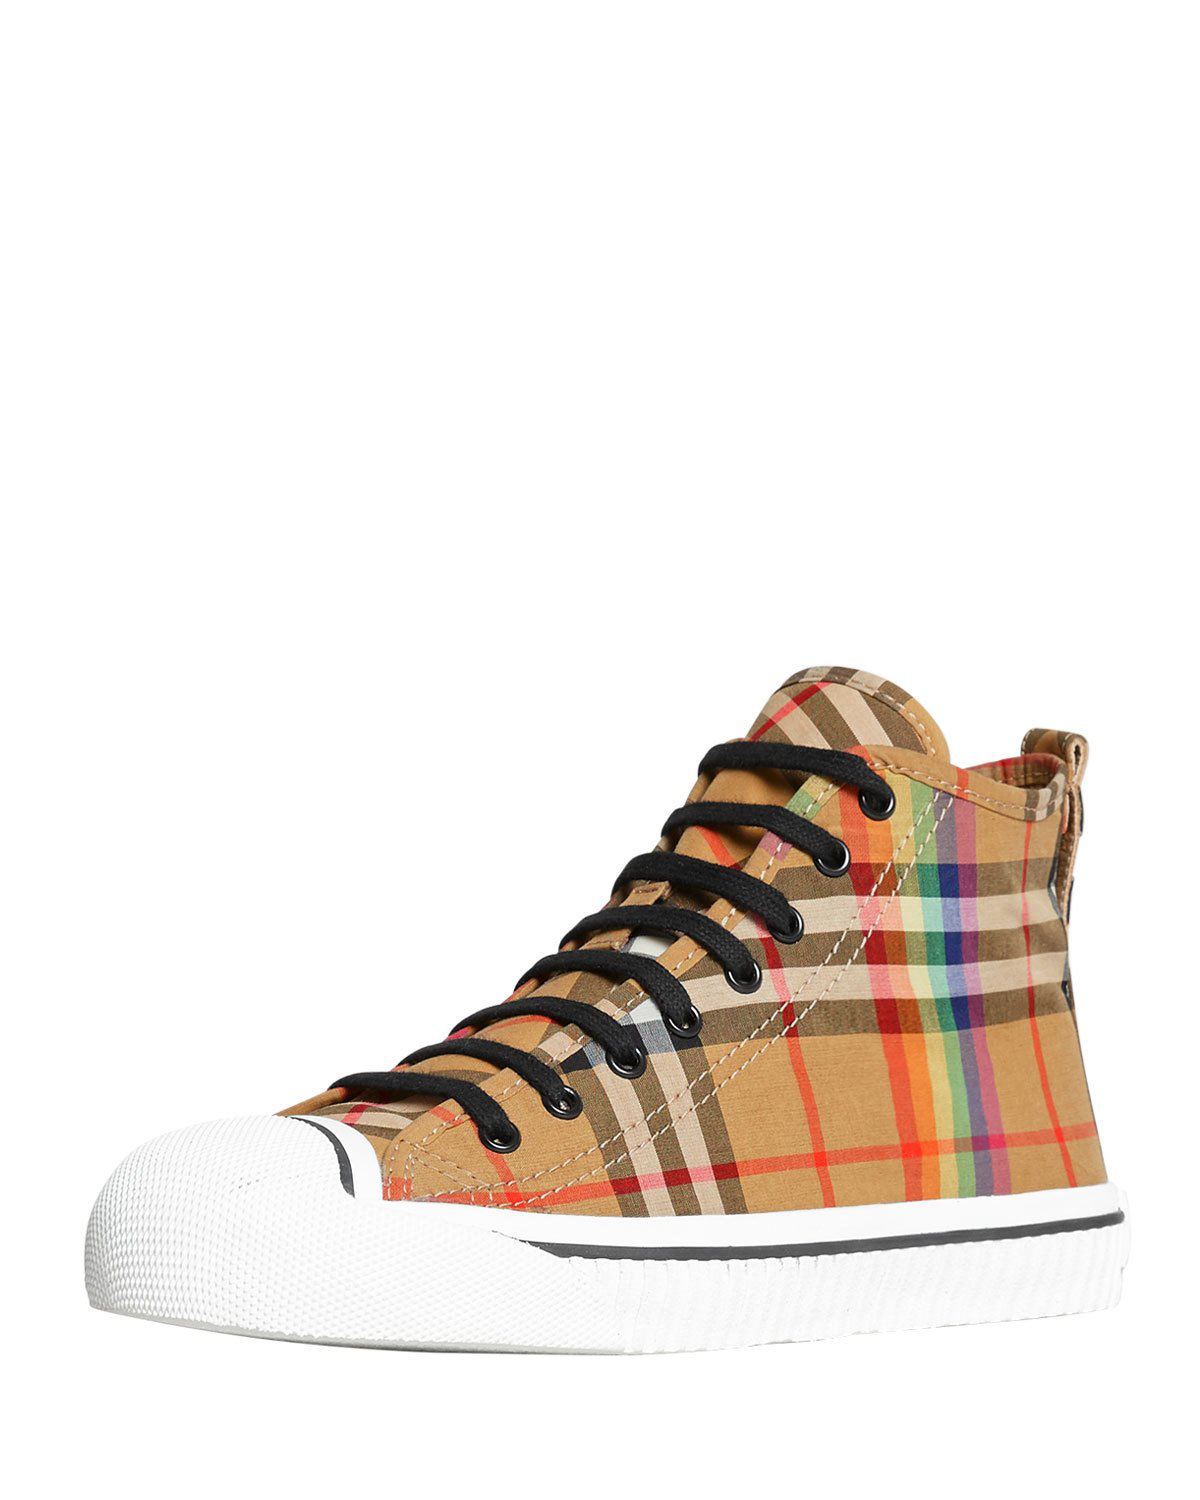 6d7310469 Burberry Men's Kingly High-Top Rainbow Check Sneakers In Brown ...